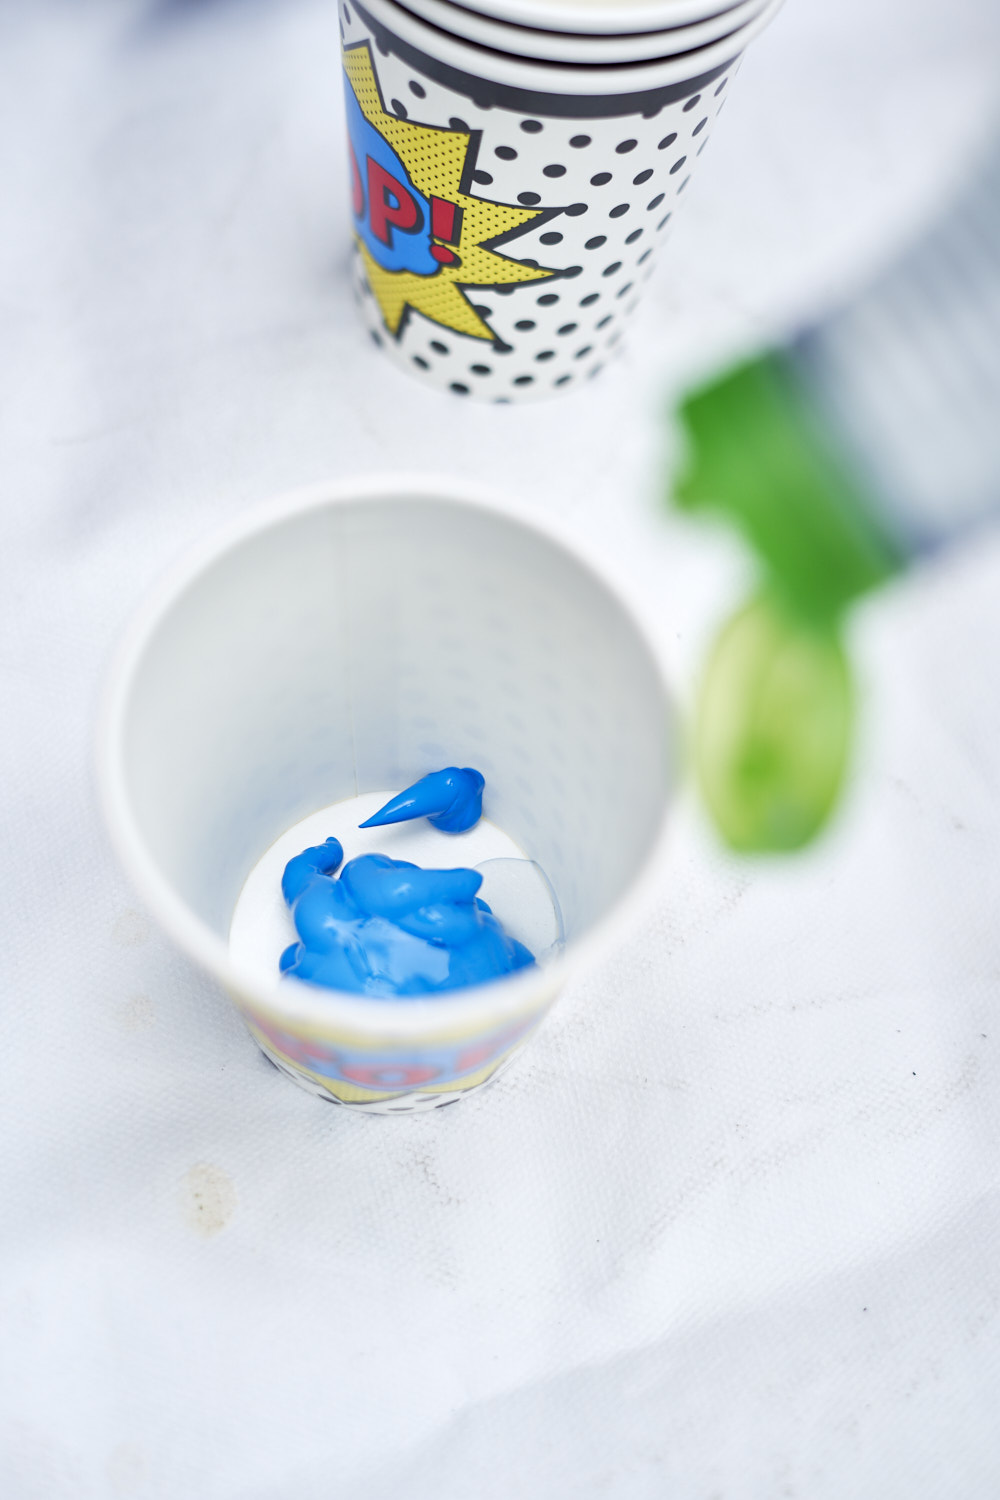 Acrylic_paint_pouring 2.jpg